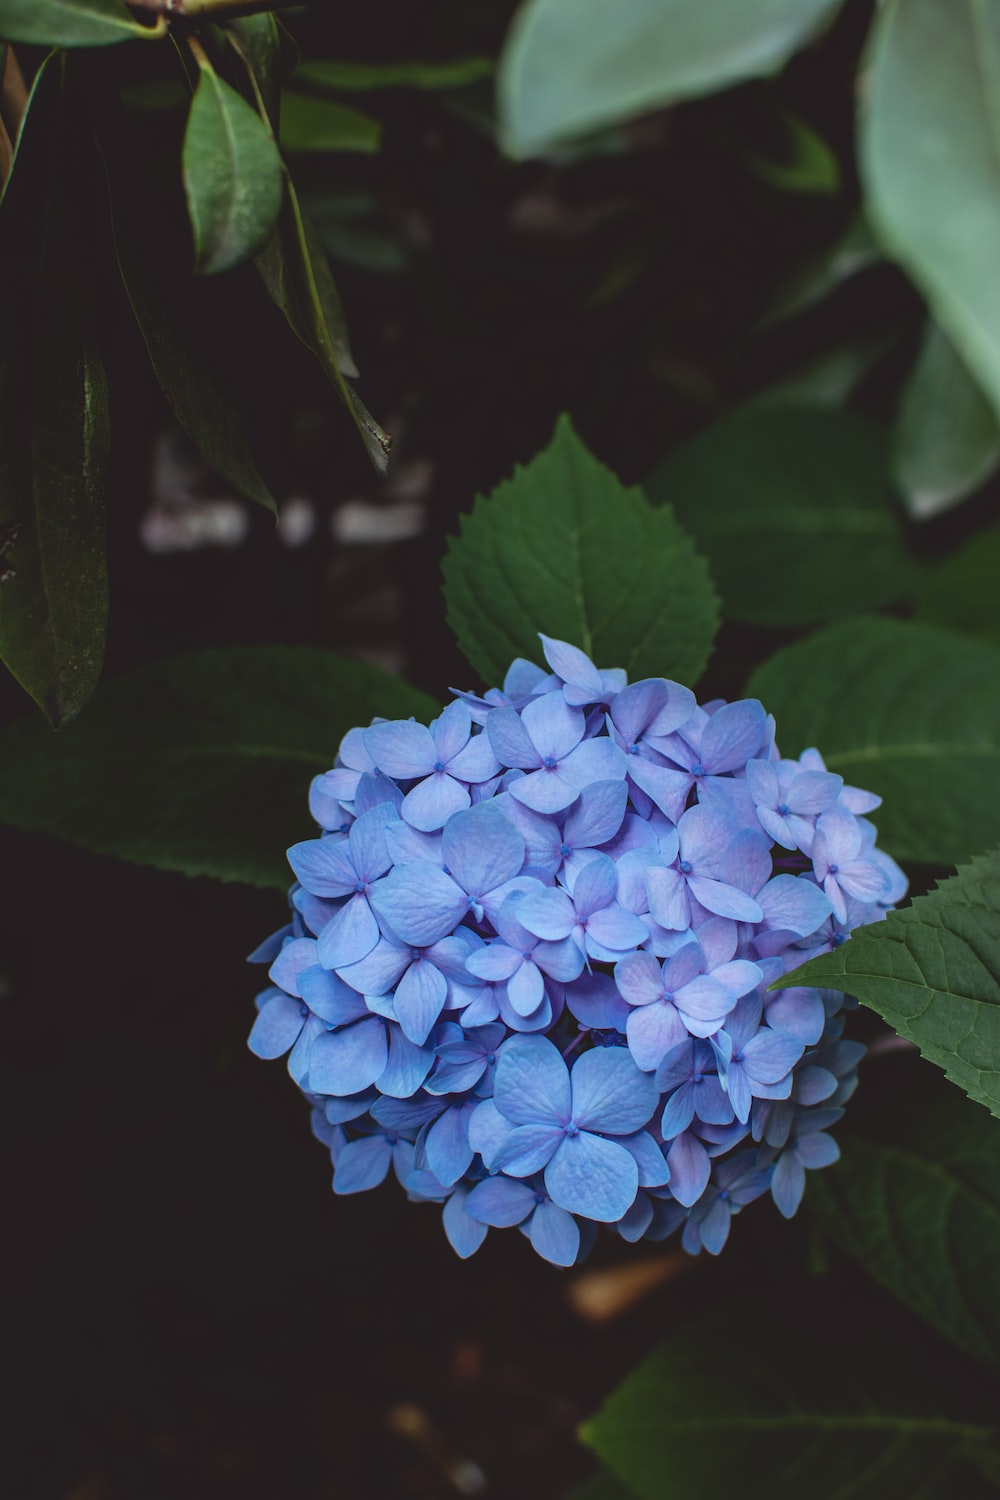 Hydrangea pictures hq download free images on unsplash green leafed plant with purple flowers izmirmasajfo